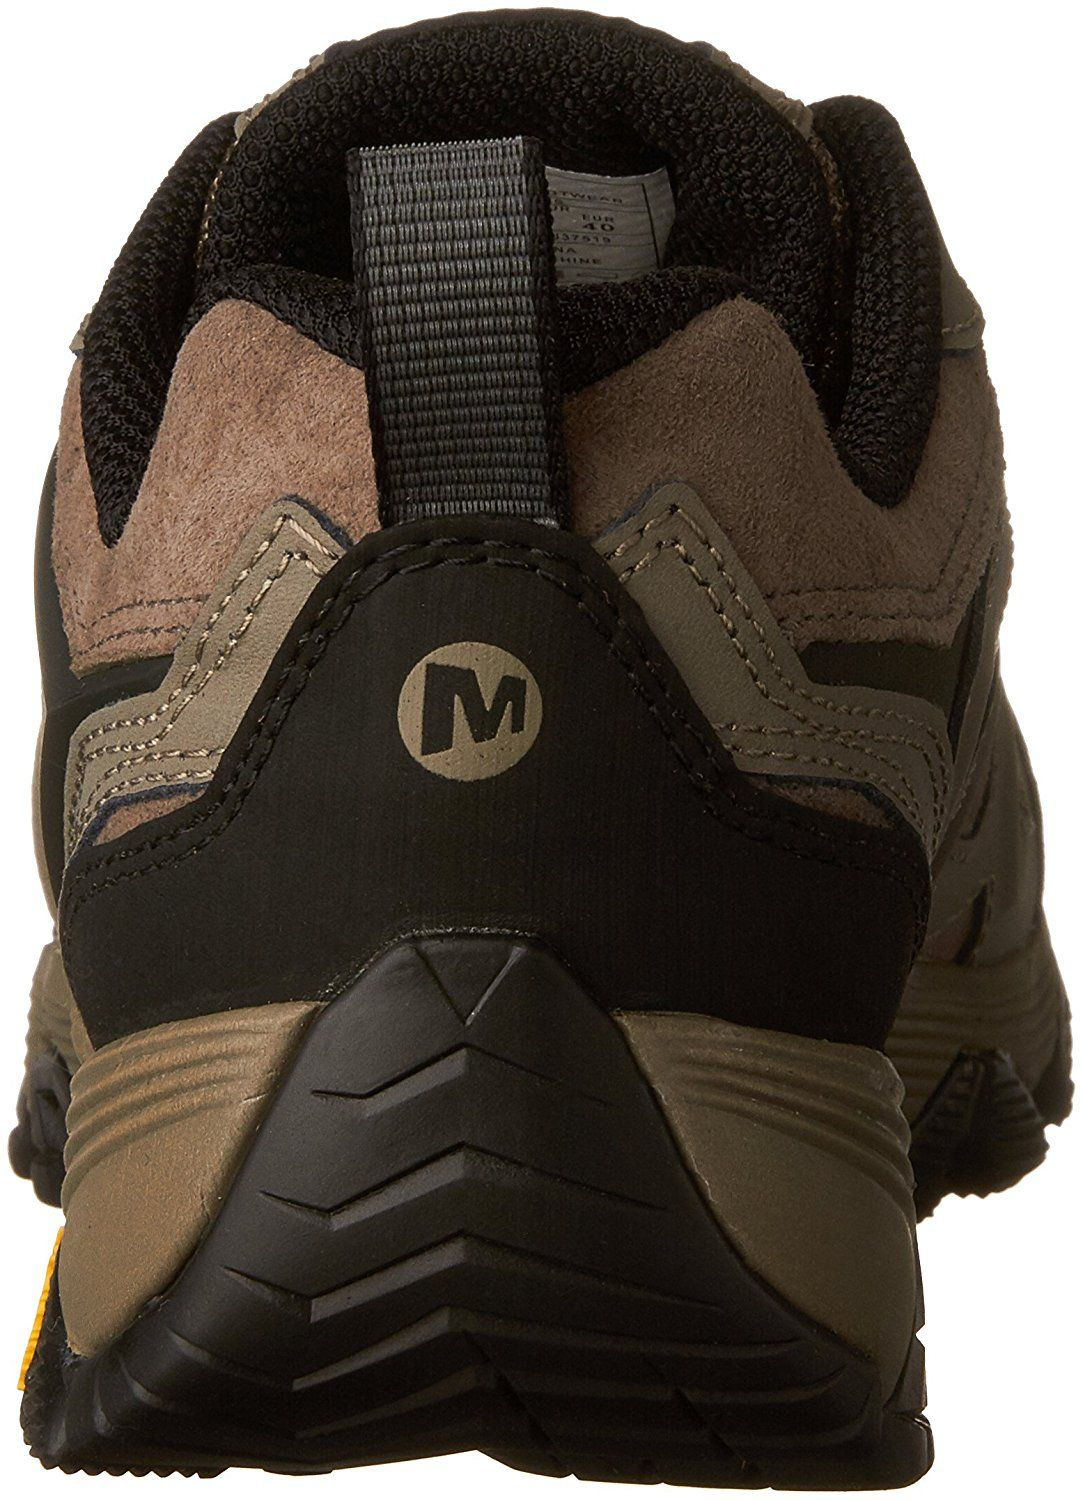 7376c6a296 Merrell Men s Moab Fst Ltr Hiking Shoe     See this awesome article   CampingBoots